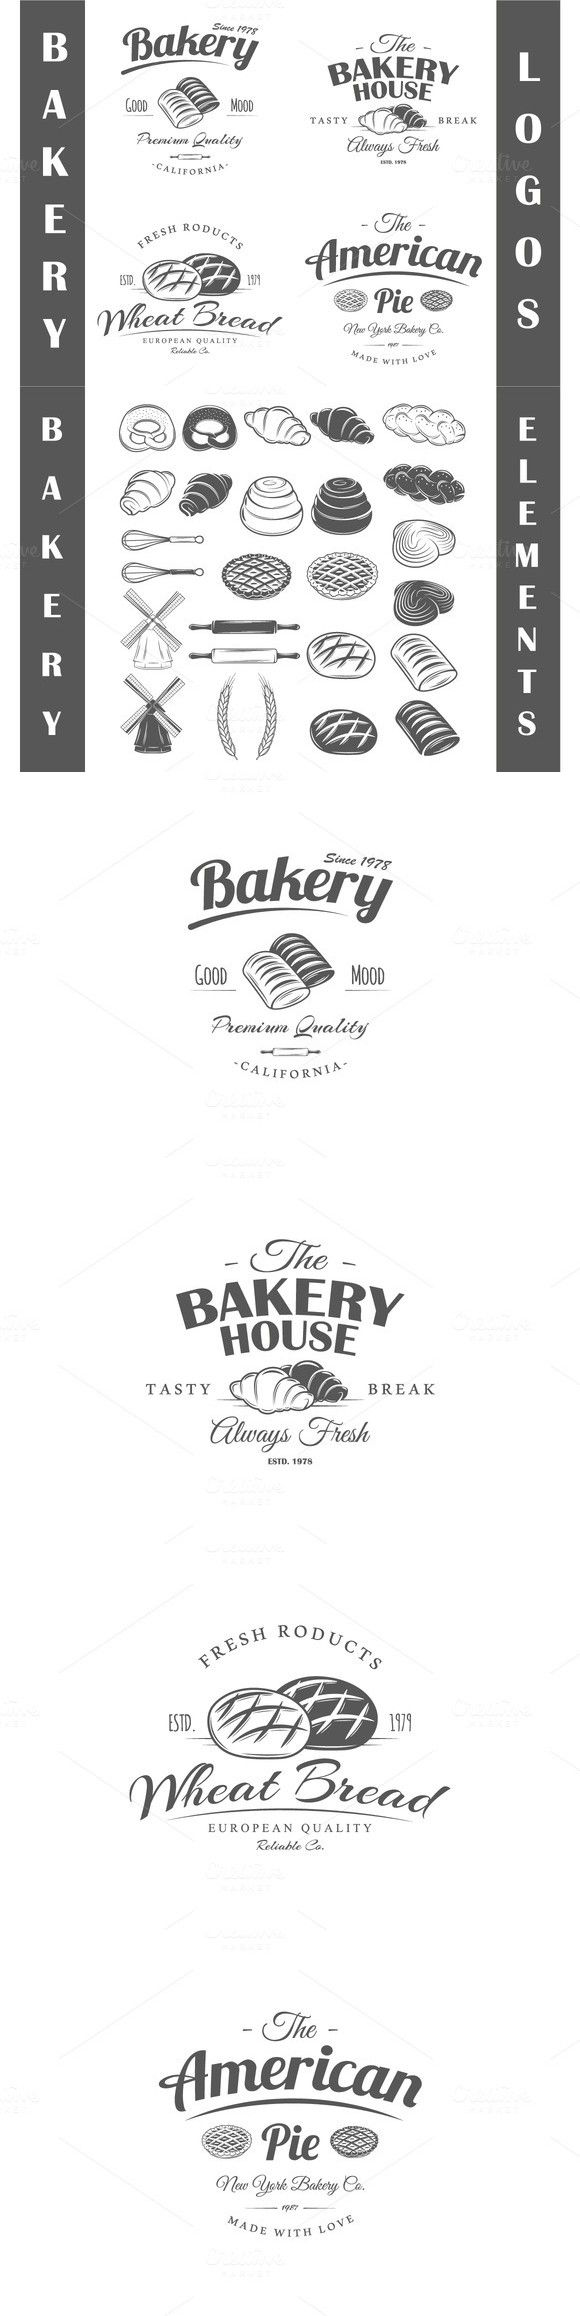 4 Bakery logos templates Vol.2. $5.00